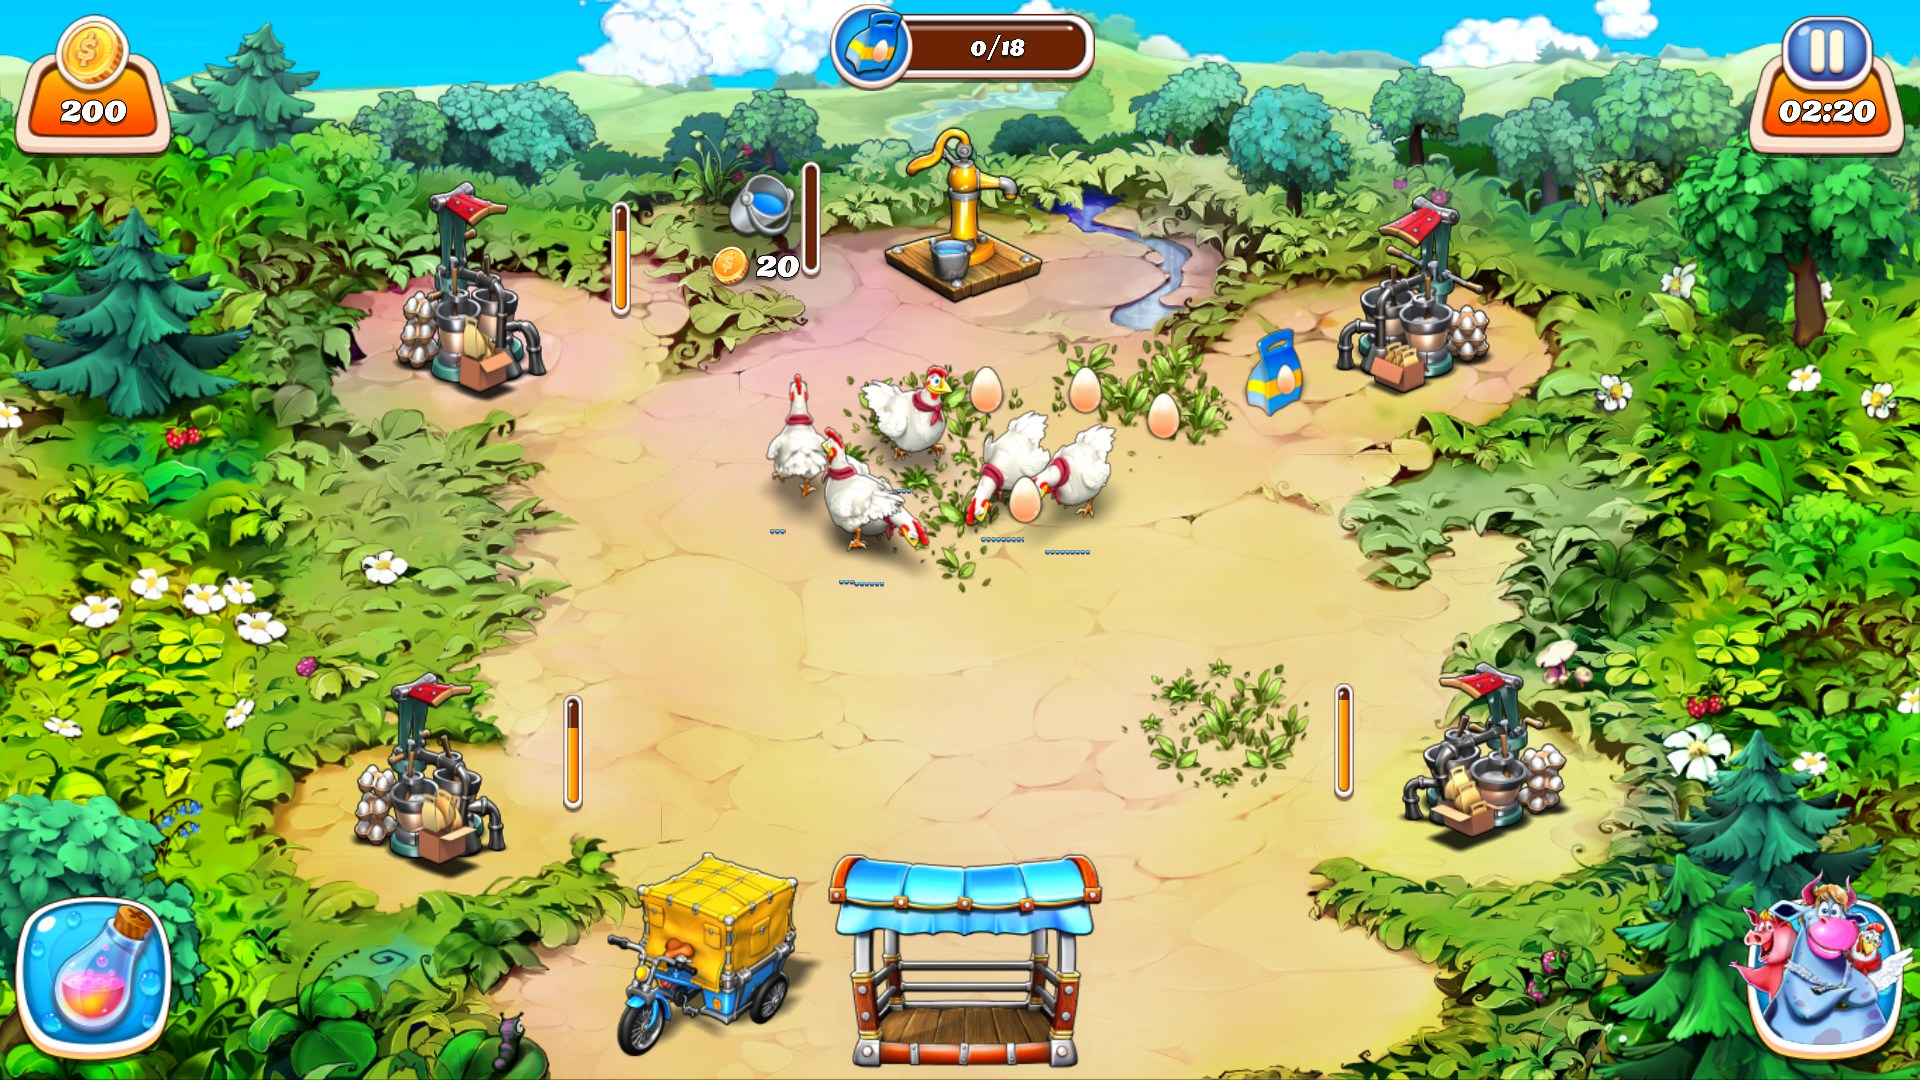 10 best farming games and simulators for Android